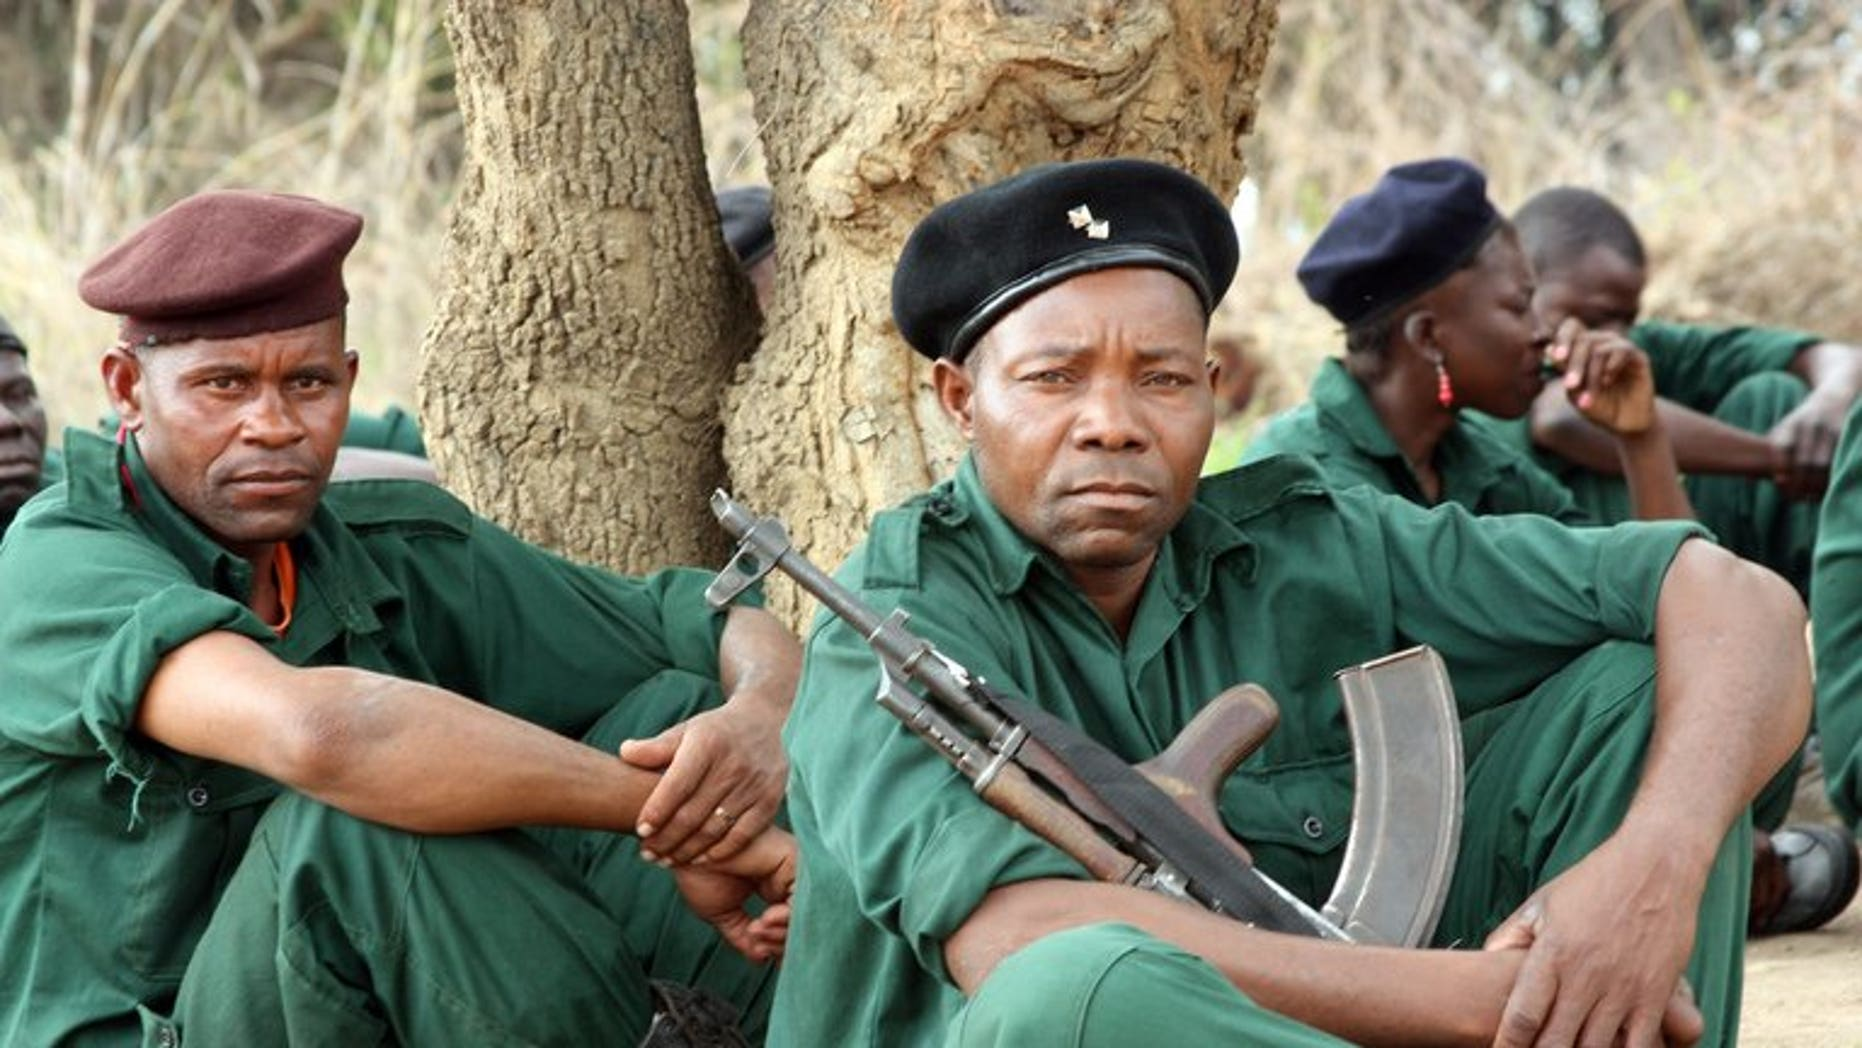 Fighters of former rebel movement Renamo receive military training in Gorongosa's mountains in Mozambique on November 8, 2012. Mozambique police dismissed claims by former rebels Renamo that they had killed 36 soldiers and police, admitting to only one death from the weekend clashes.